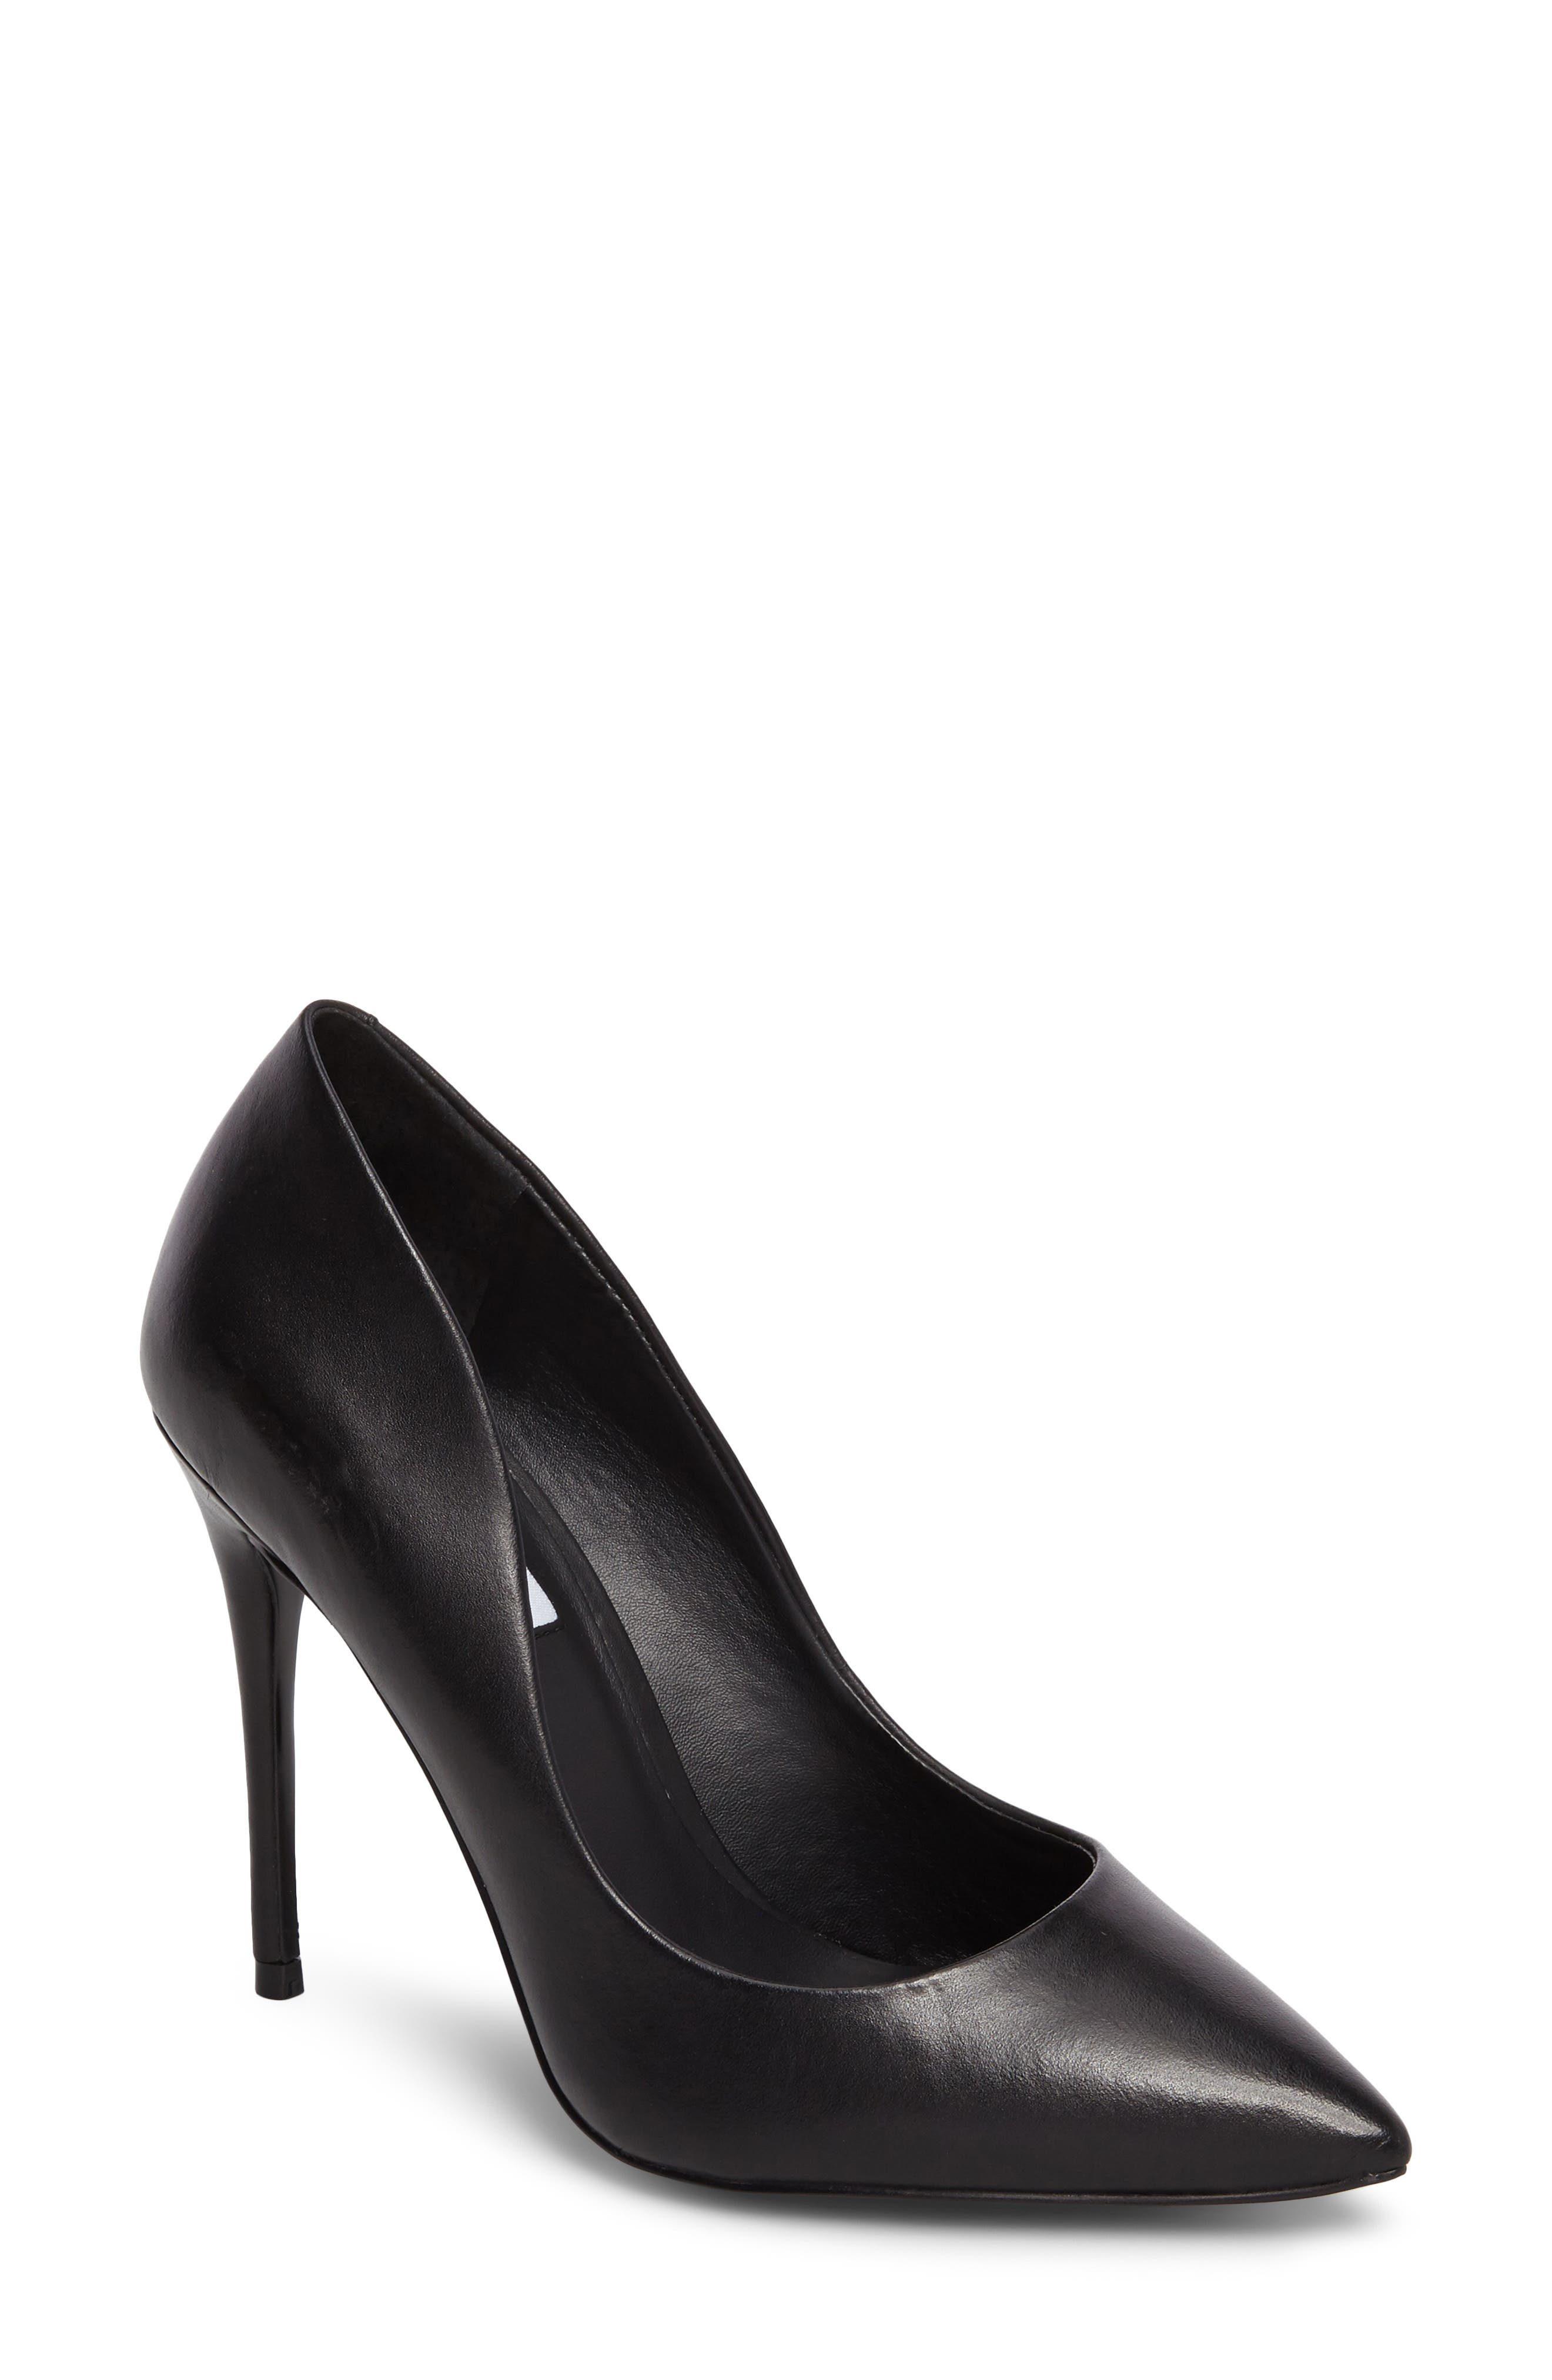 Alternate Image 1 Selected - Steve Madden Daisie Pointy-Toe Pump (Women)